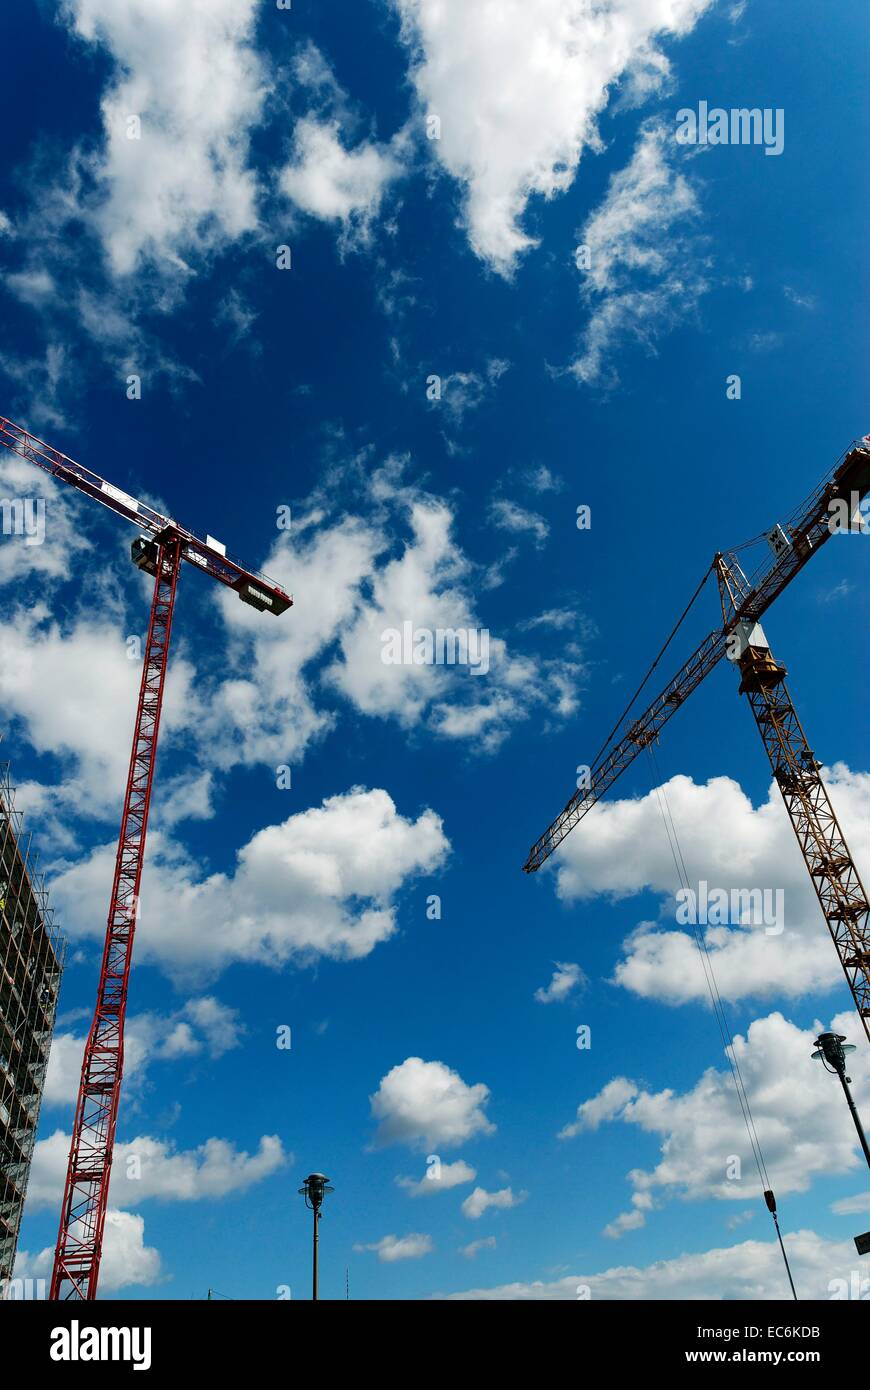 Construction site - Stock Image